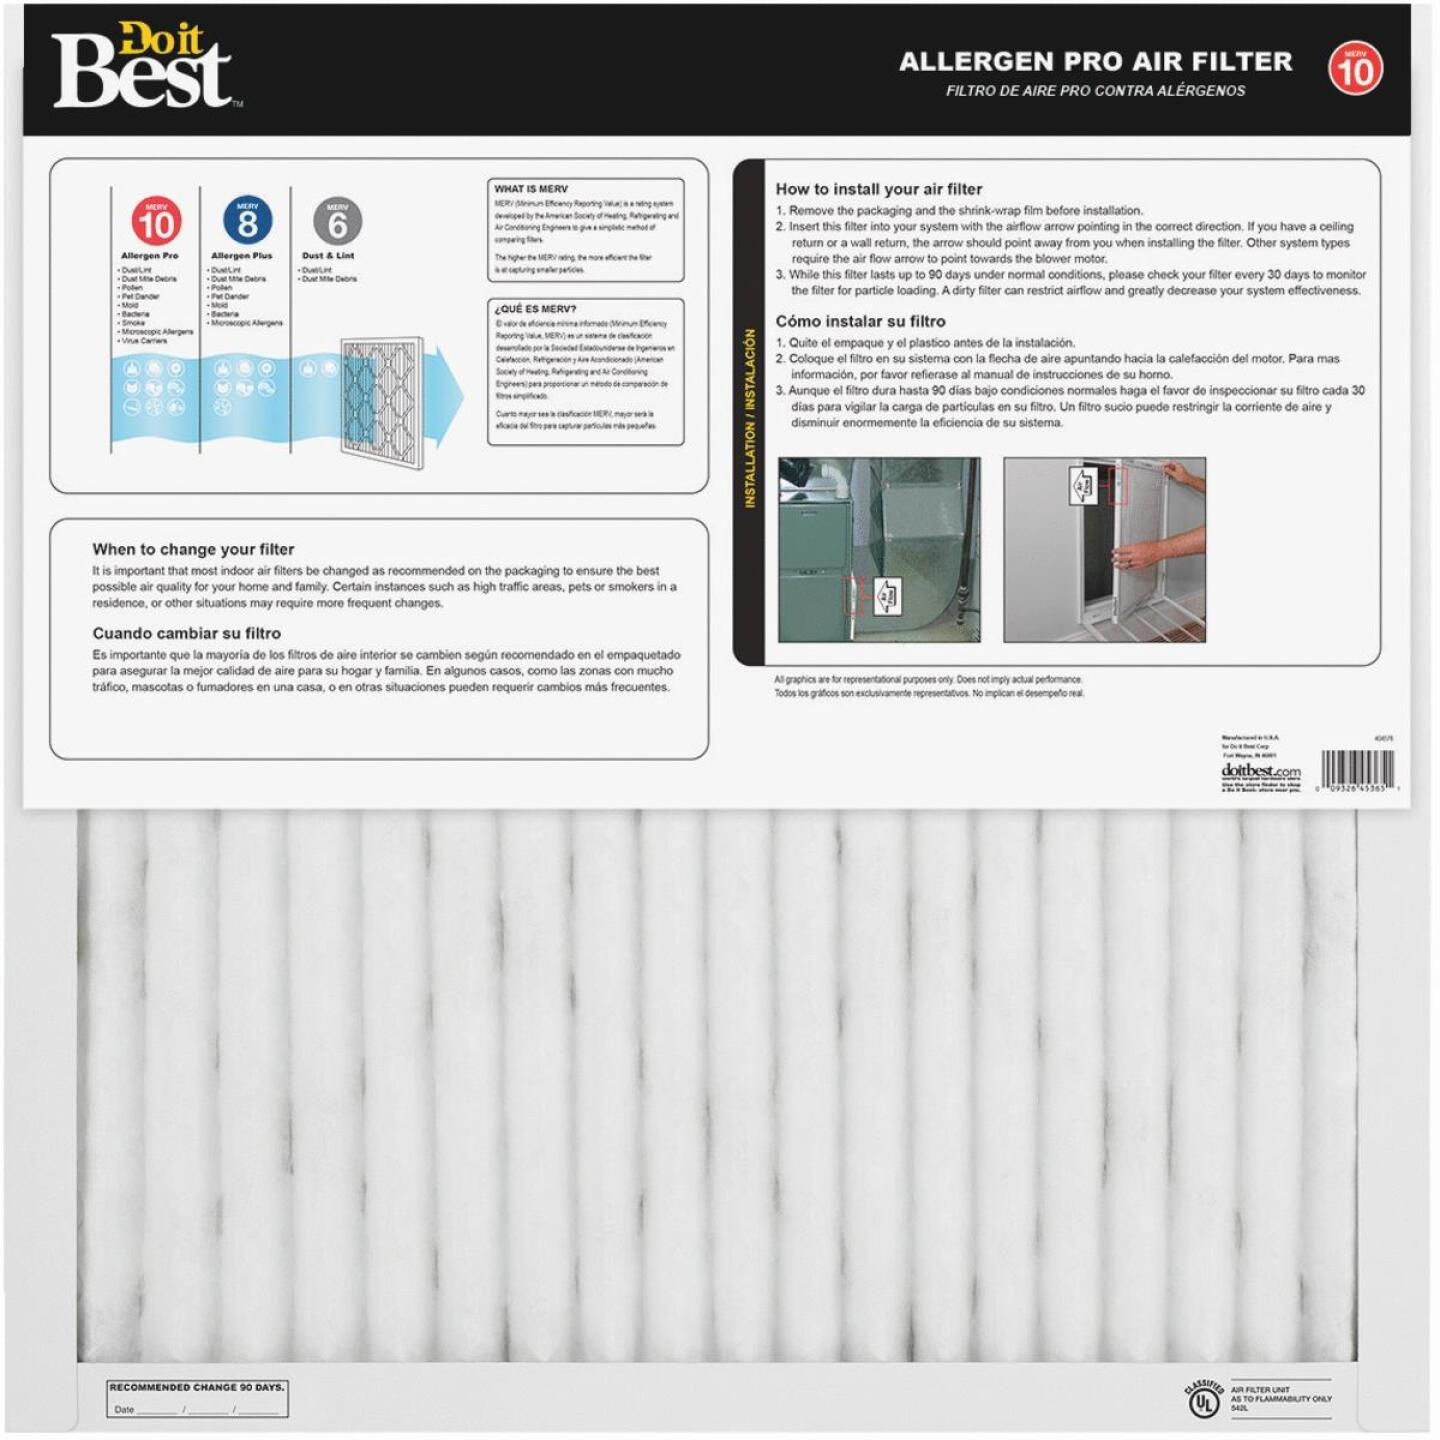 Do it Best 20 In. x 25 In. x 1 In. Allergen Pro MERV 10 Furnace Filter Image 2